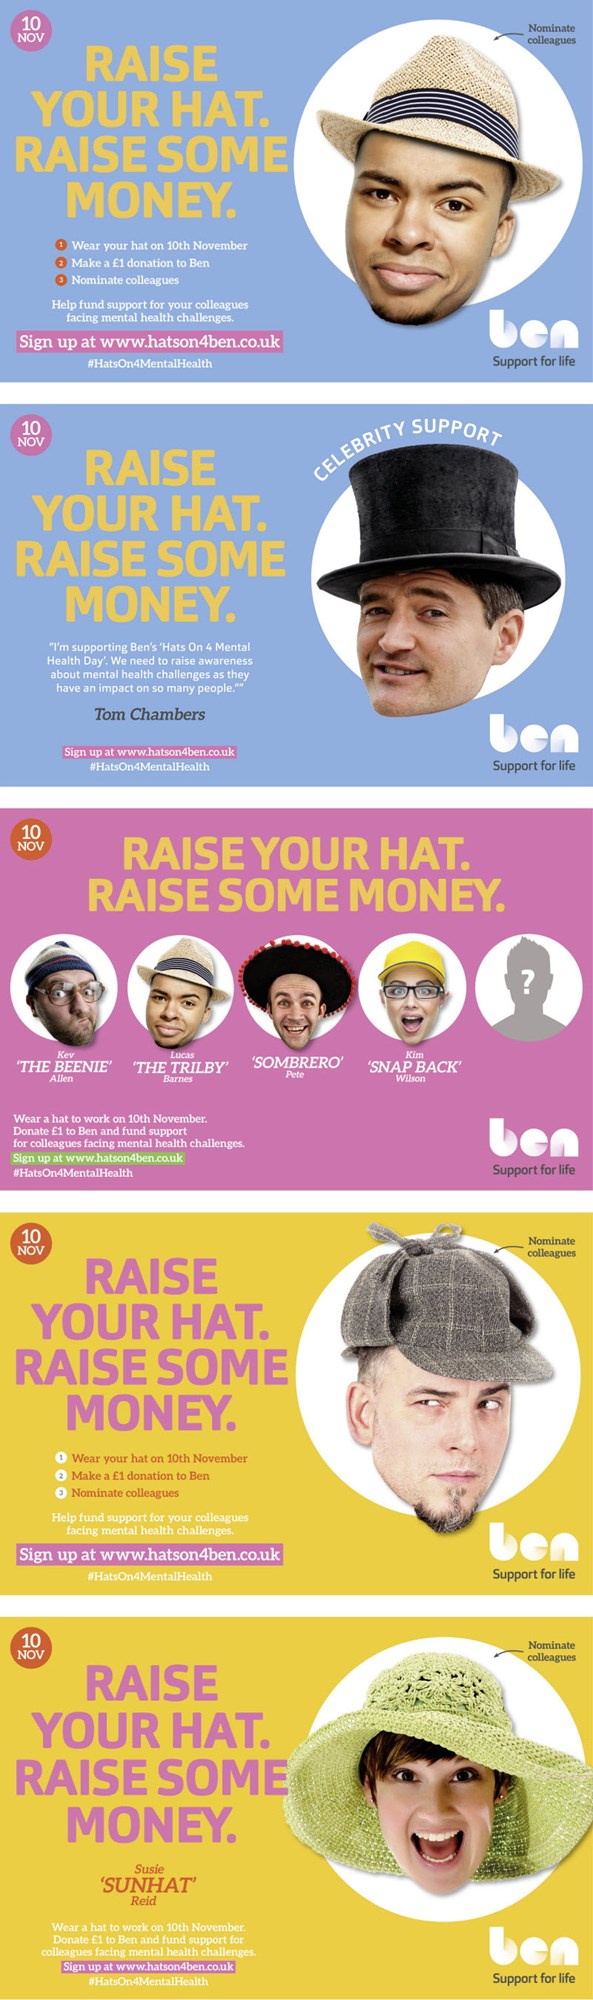 BEN raise your hat make some money banners